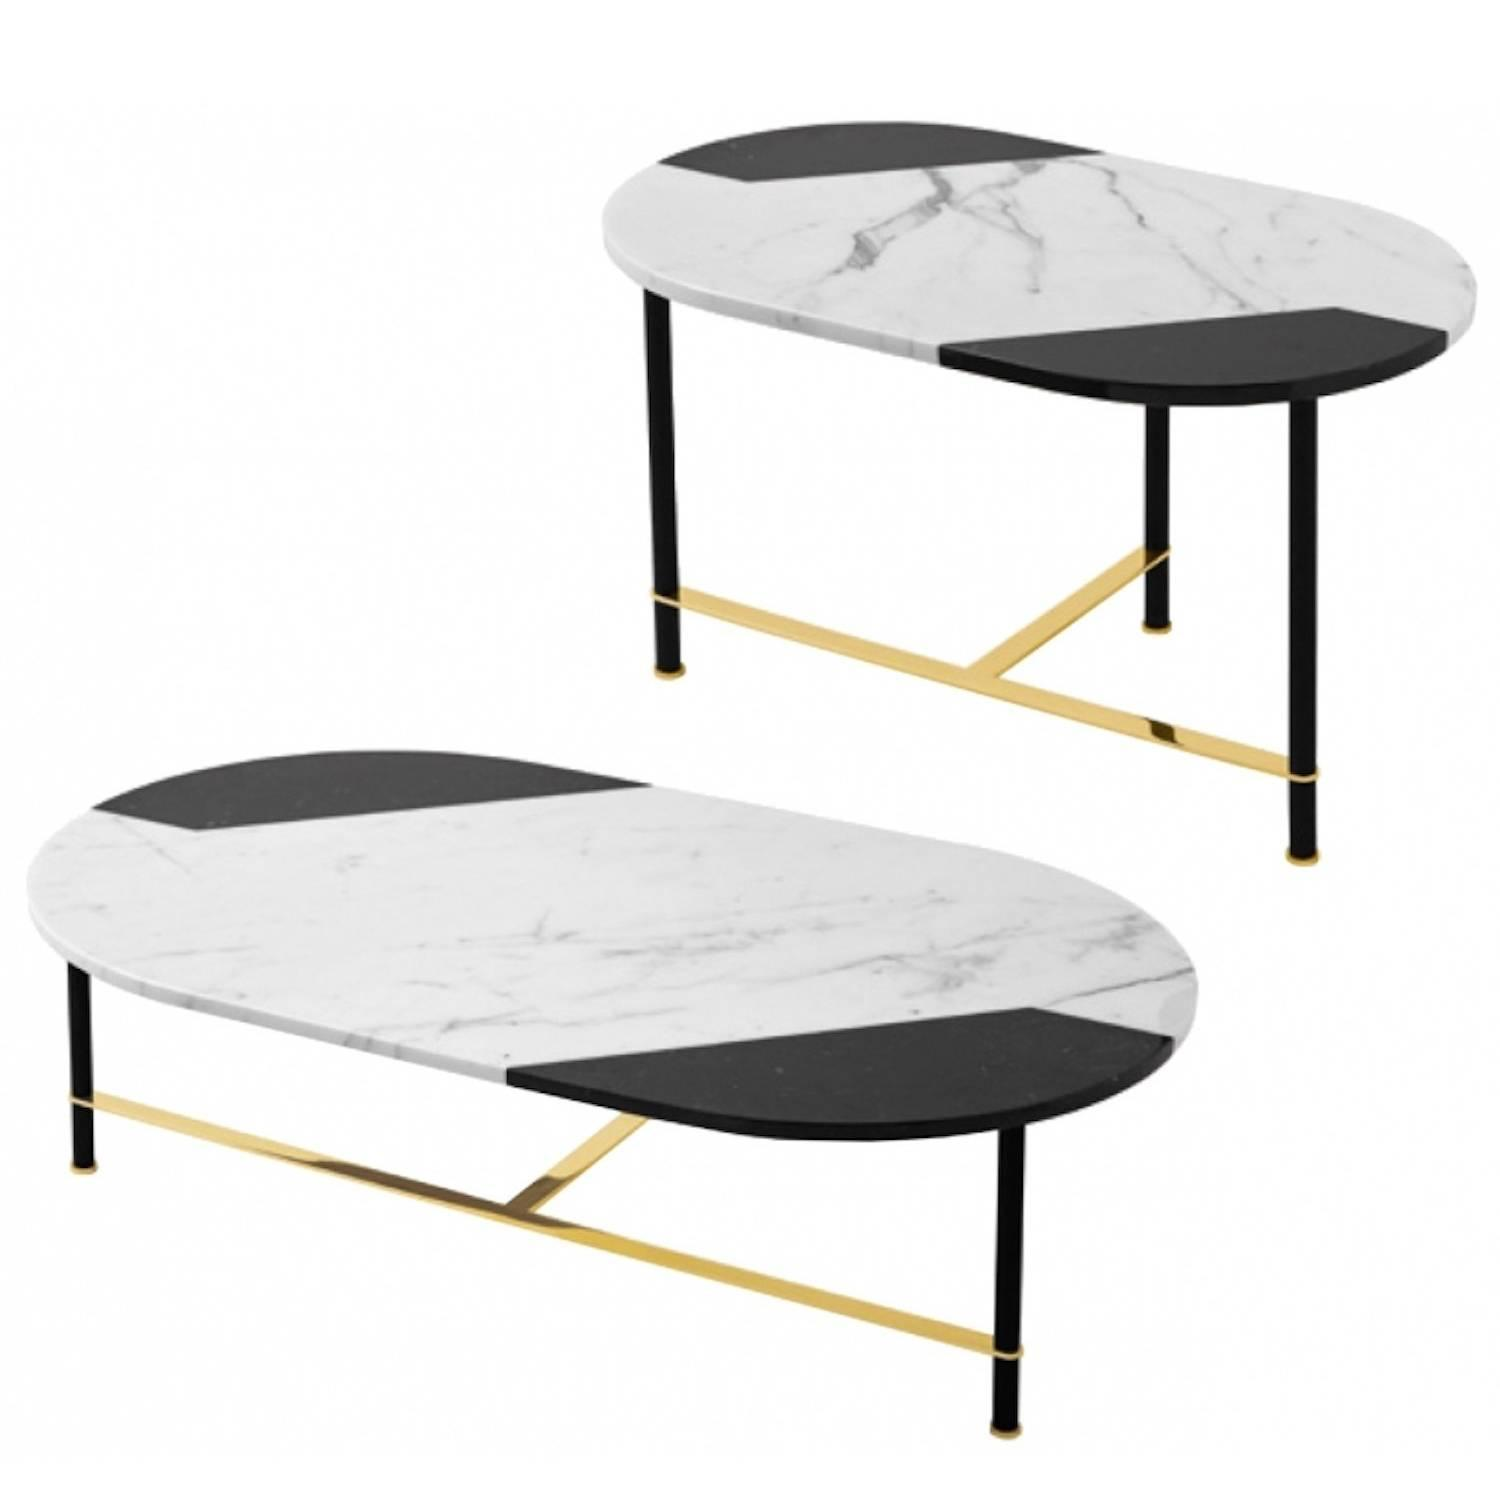 Coffee Table or Side Table in Black and White Inlaid Marble Top